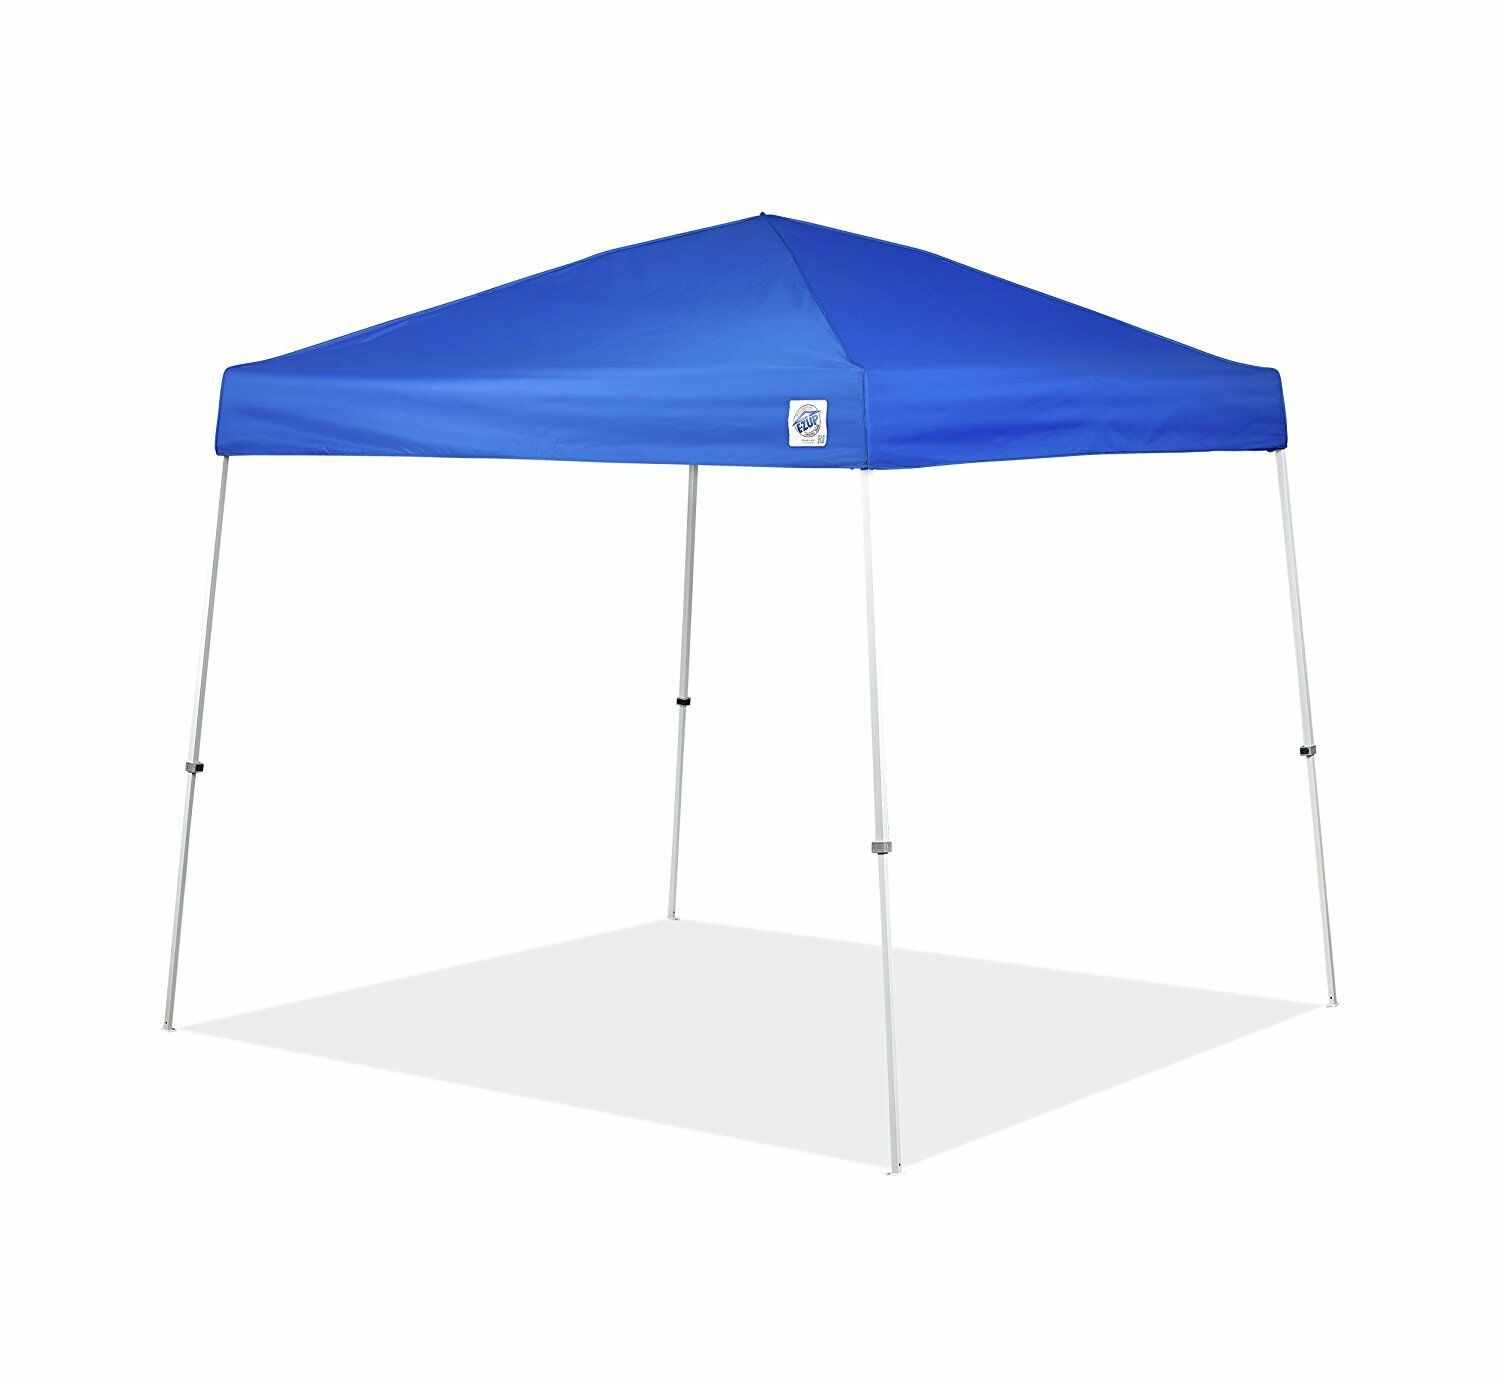 E-Z UP SR9104BL Sierra II 10 by 10-Feet Canopy, Park, Beach